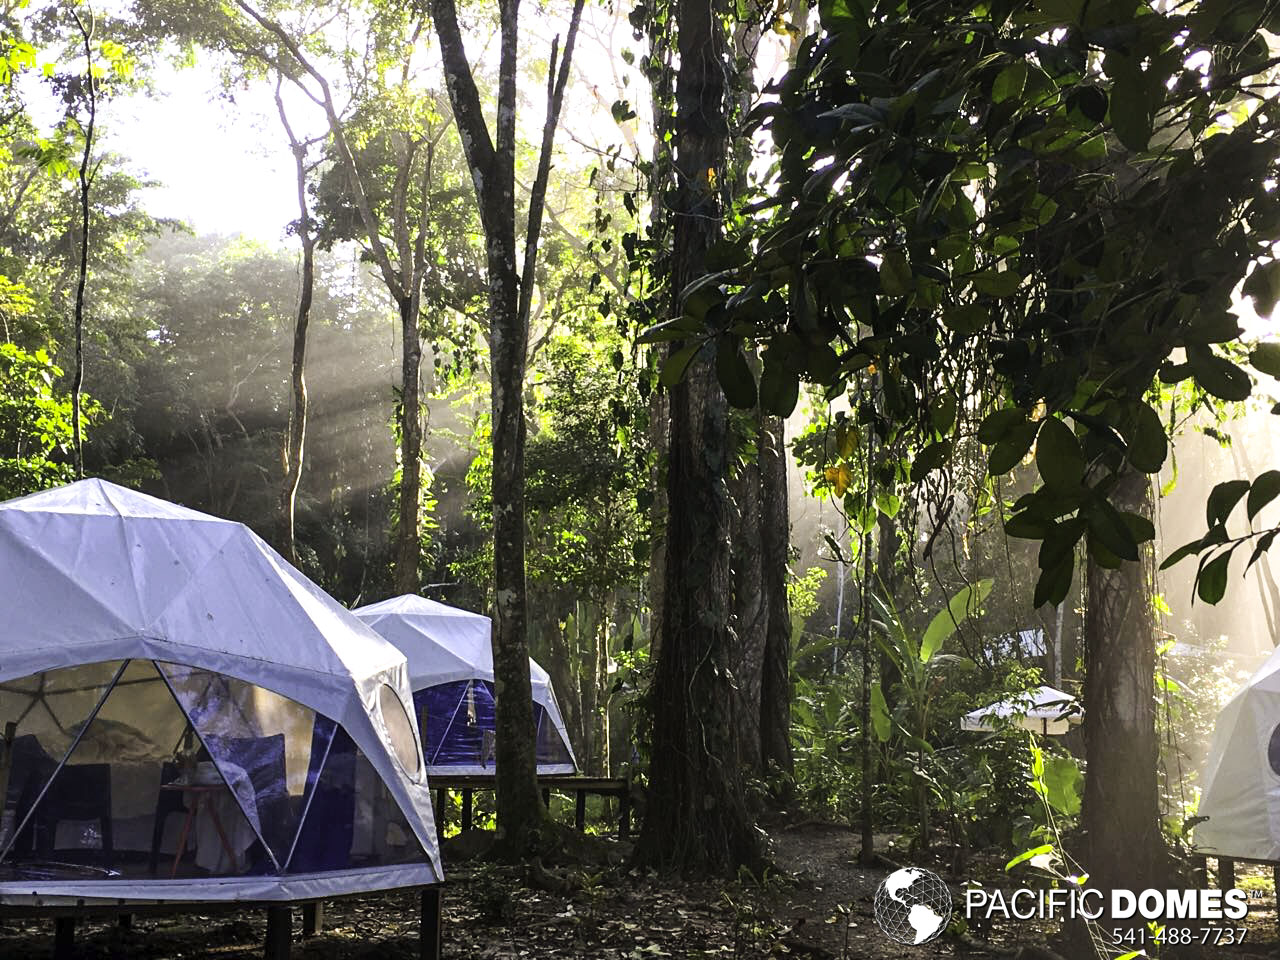 mexico glamping, glamping resort in Mexico, dome glamping